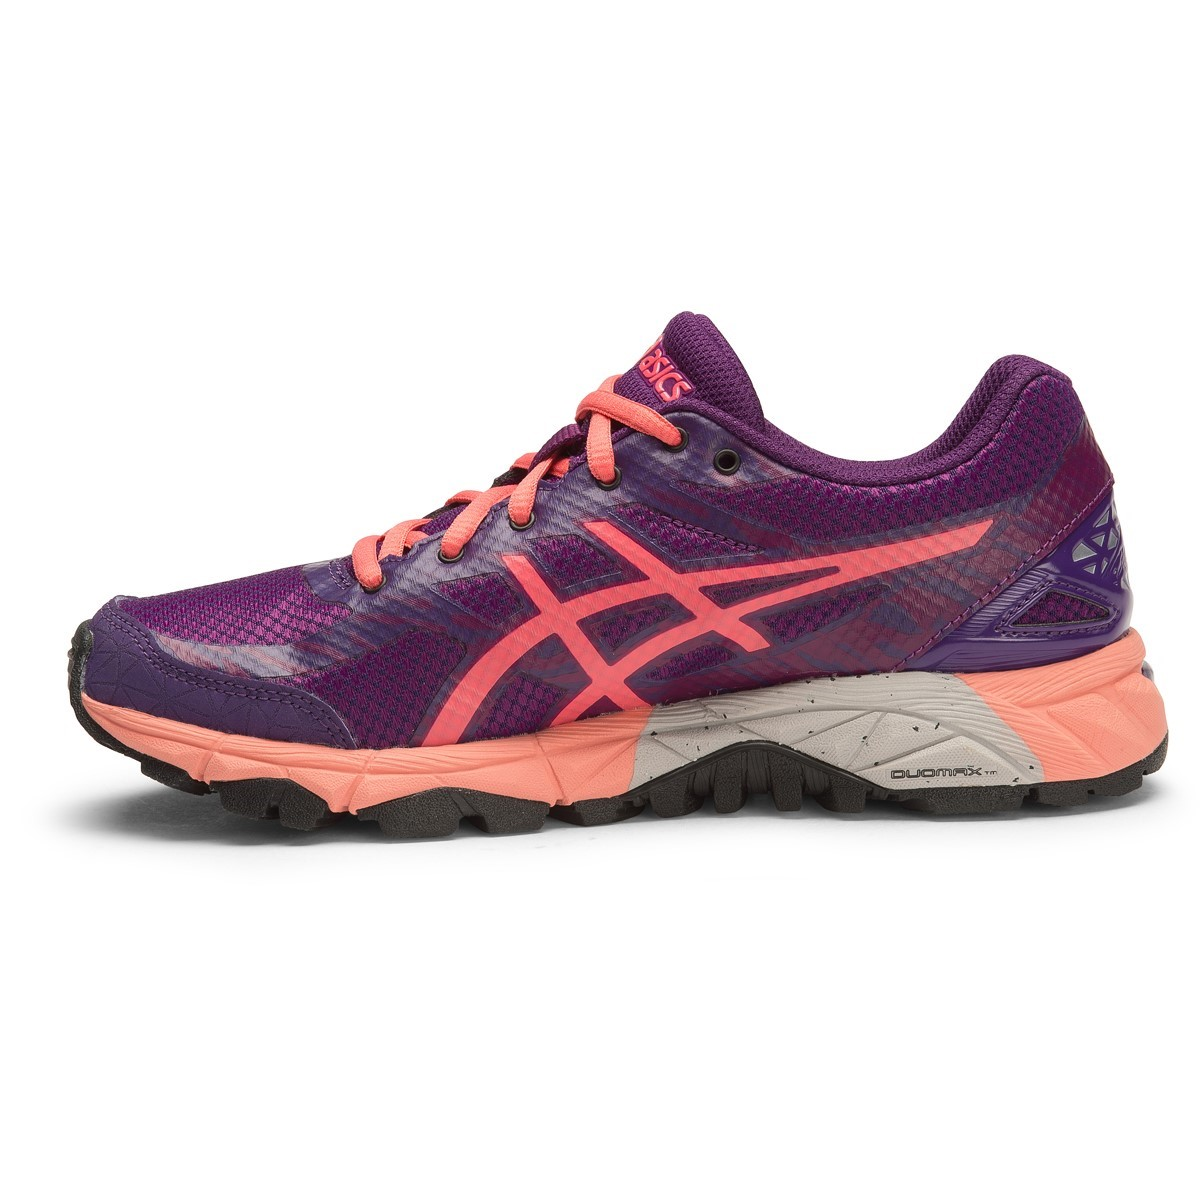 asics gel fuji trabuco 5 gs kids girls trail running shoes phlox guava parachute purple. Black Bedroom Furniture Sets. Home Design Ideas